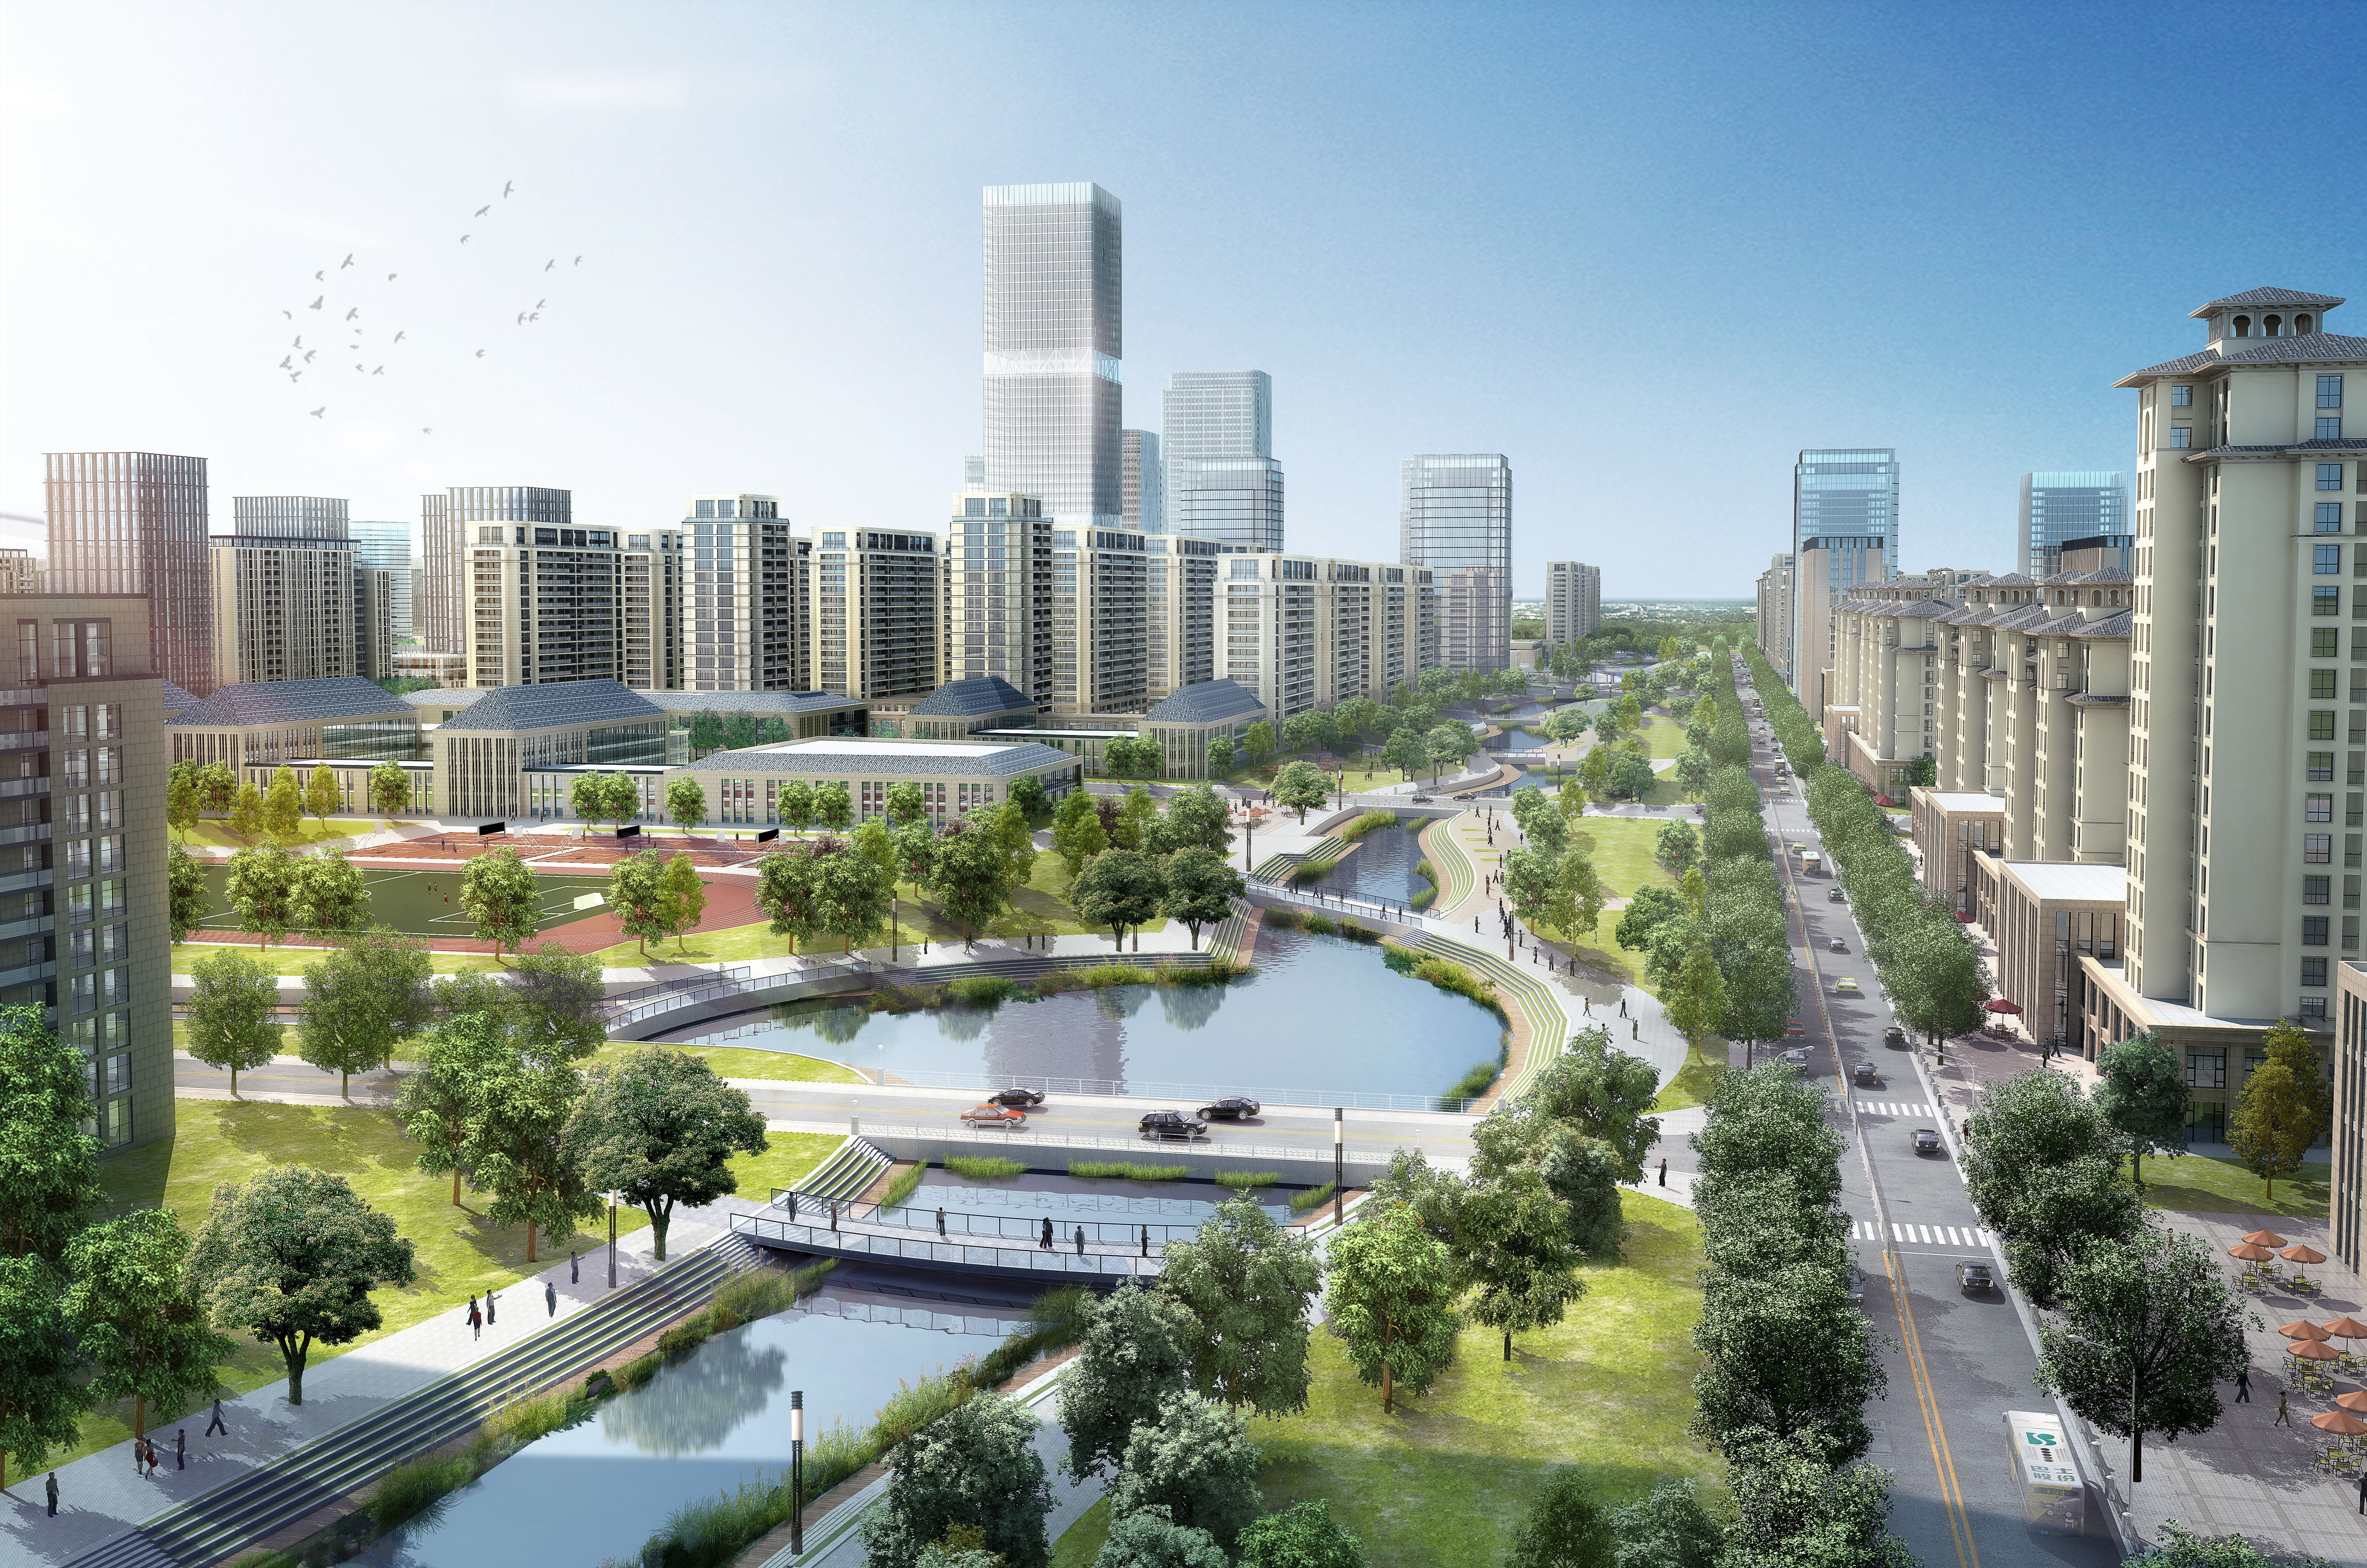 Image showing city of the future.